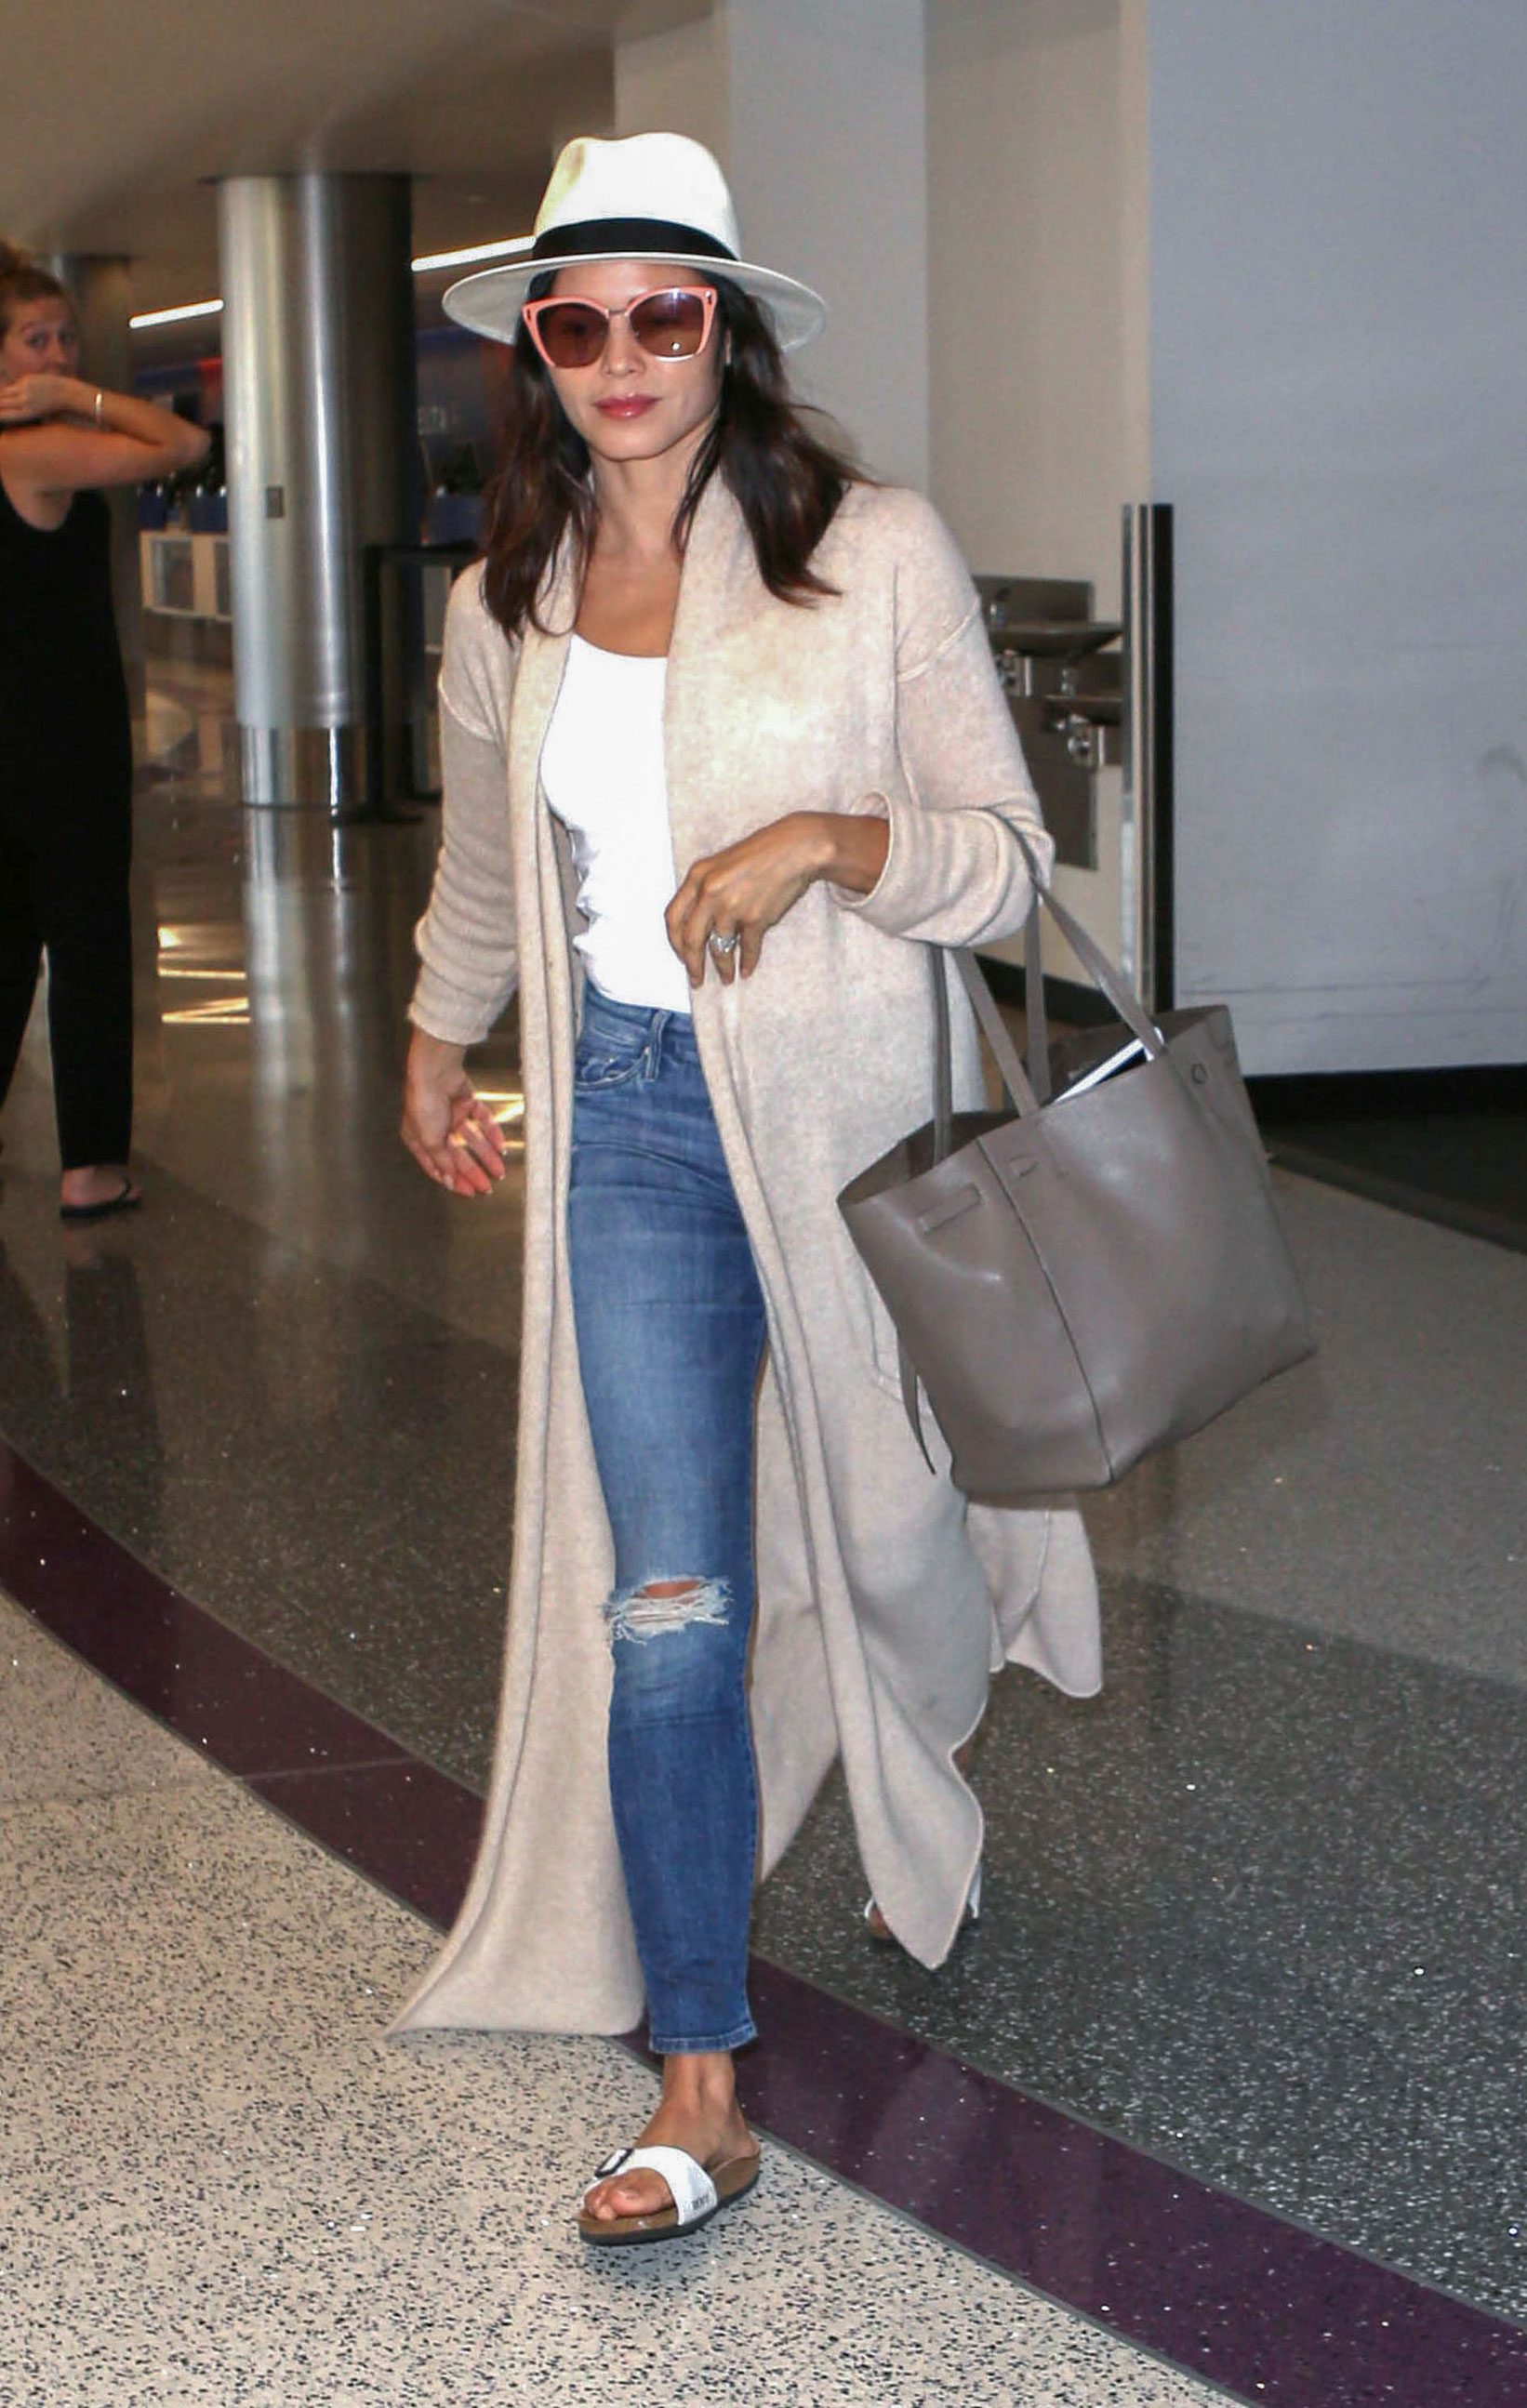 Jenna Dewan Tatum's duster and Birkenstocks look for less